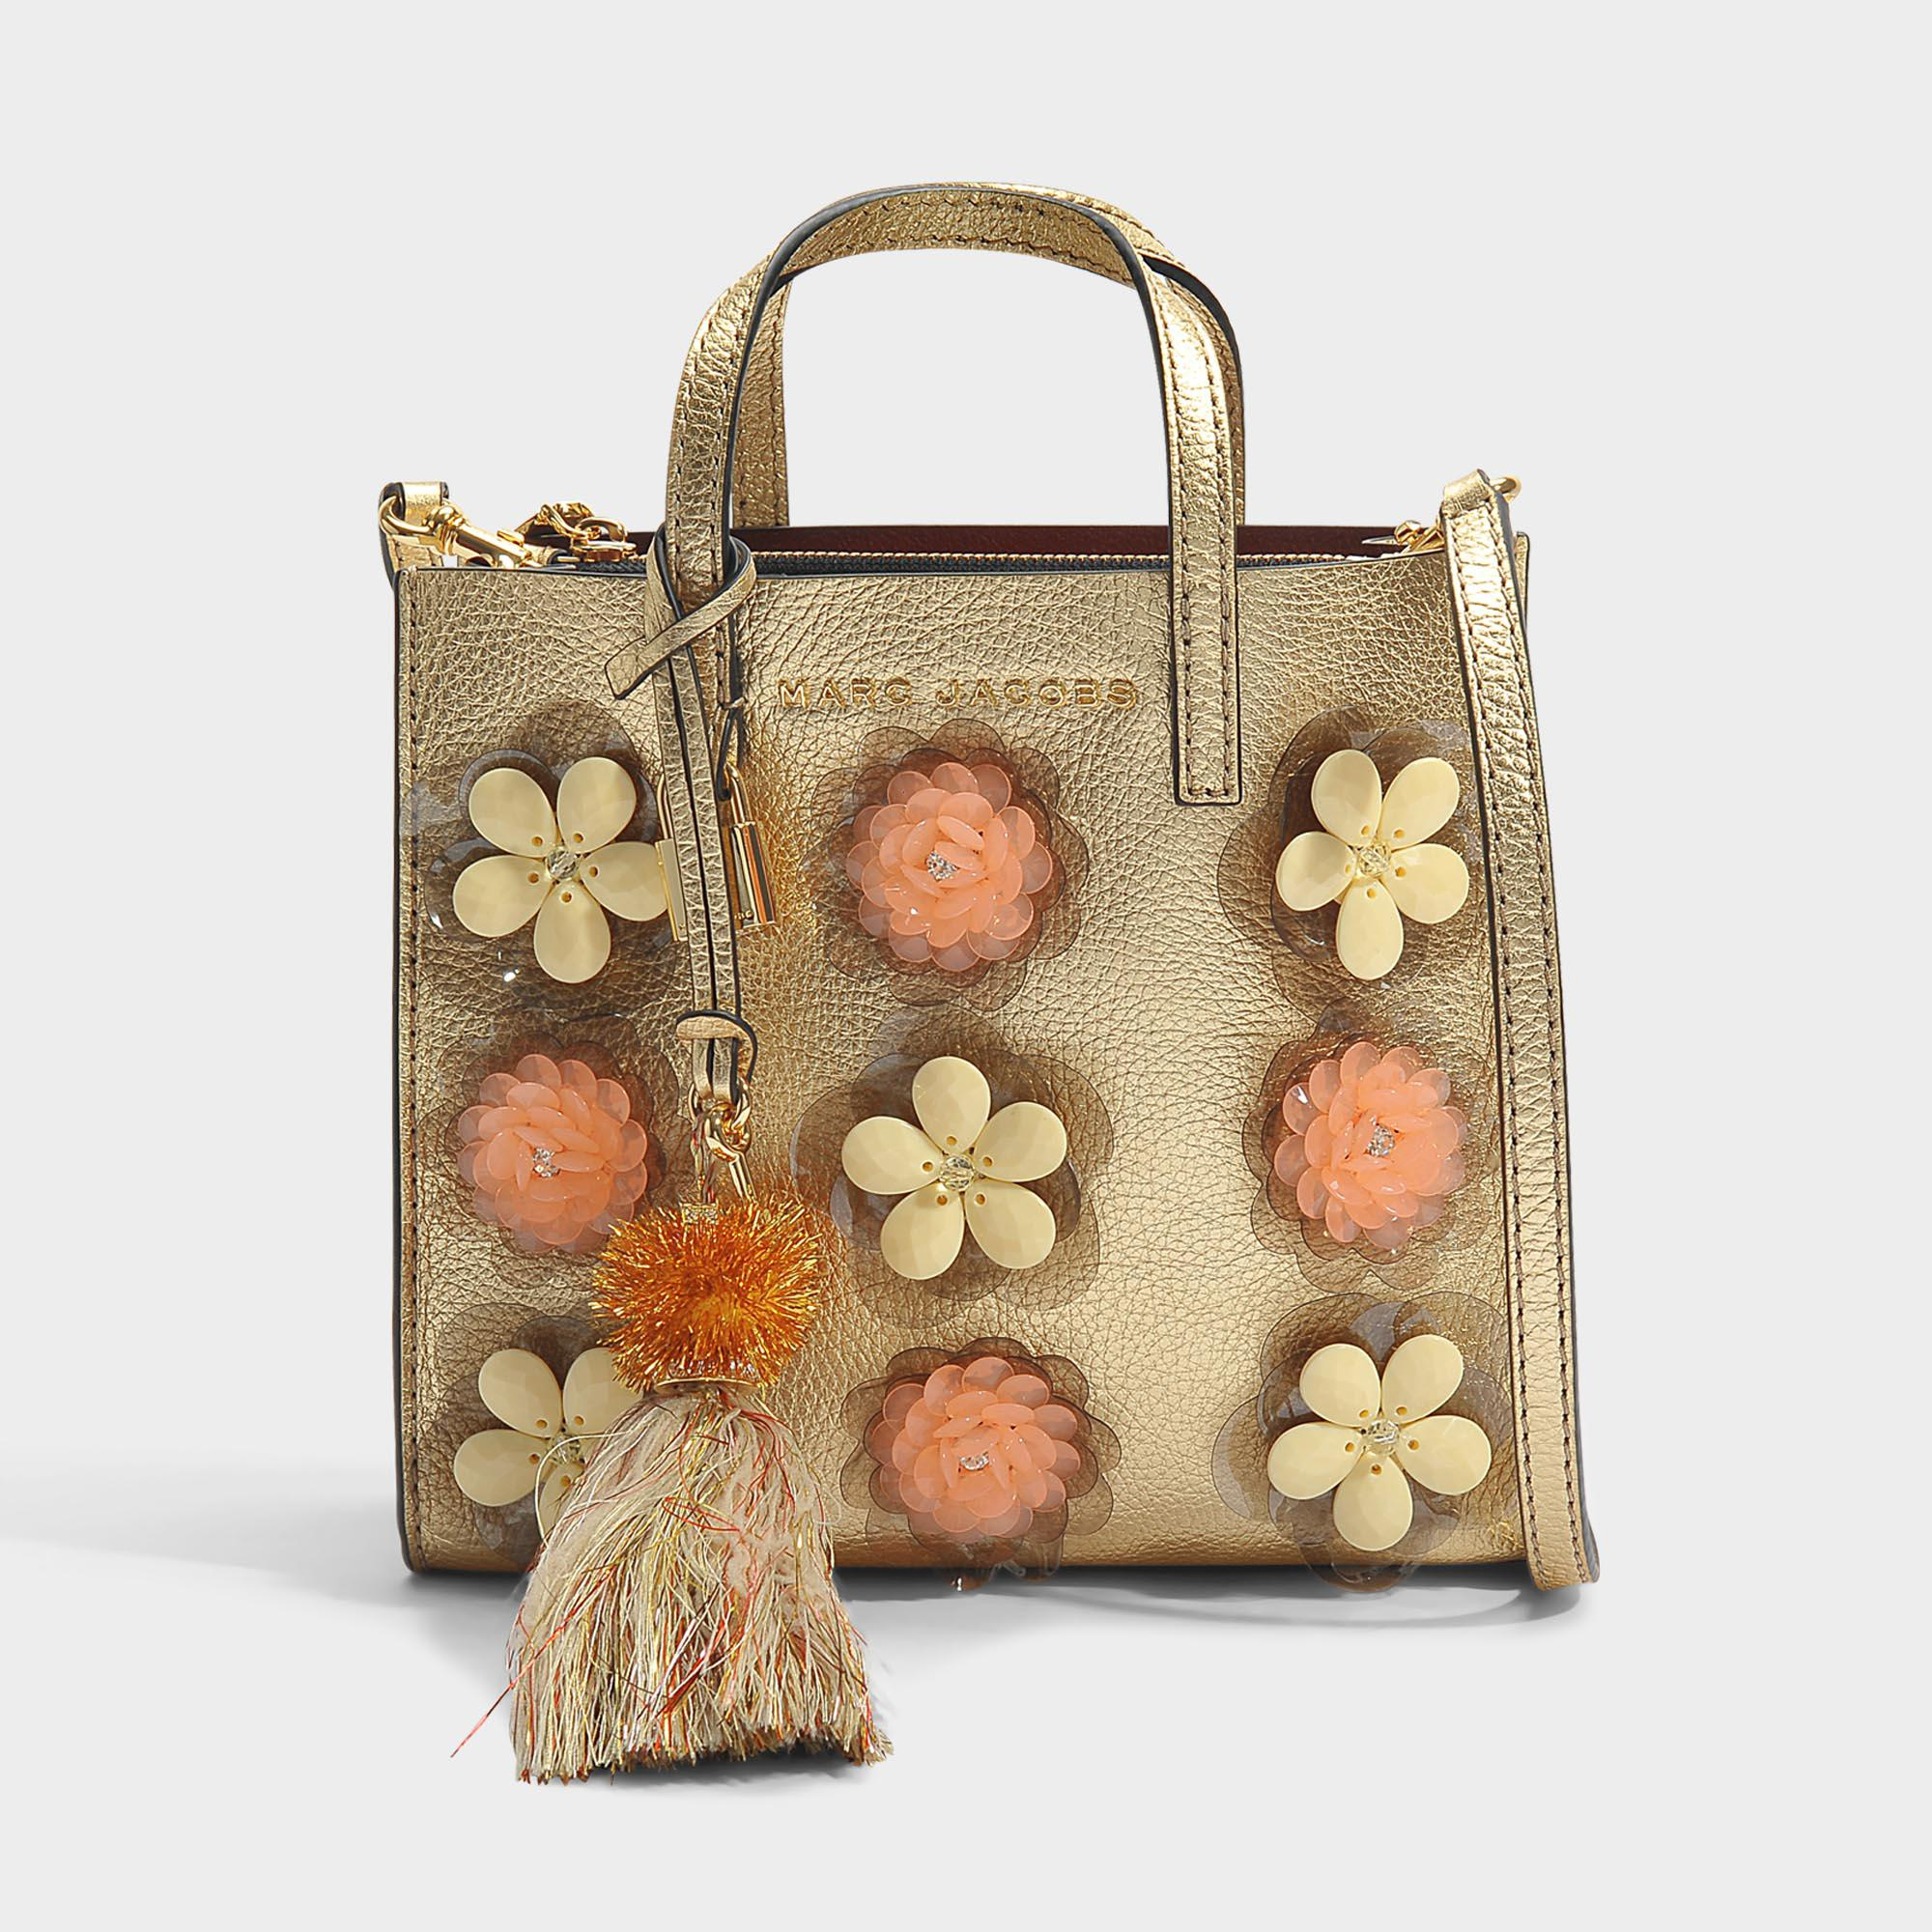 The Mini Grind Embellished Flowers Bag in Silver Cow Leather with Metallic Foil Marc Jacobs SMxGWfTHj9